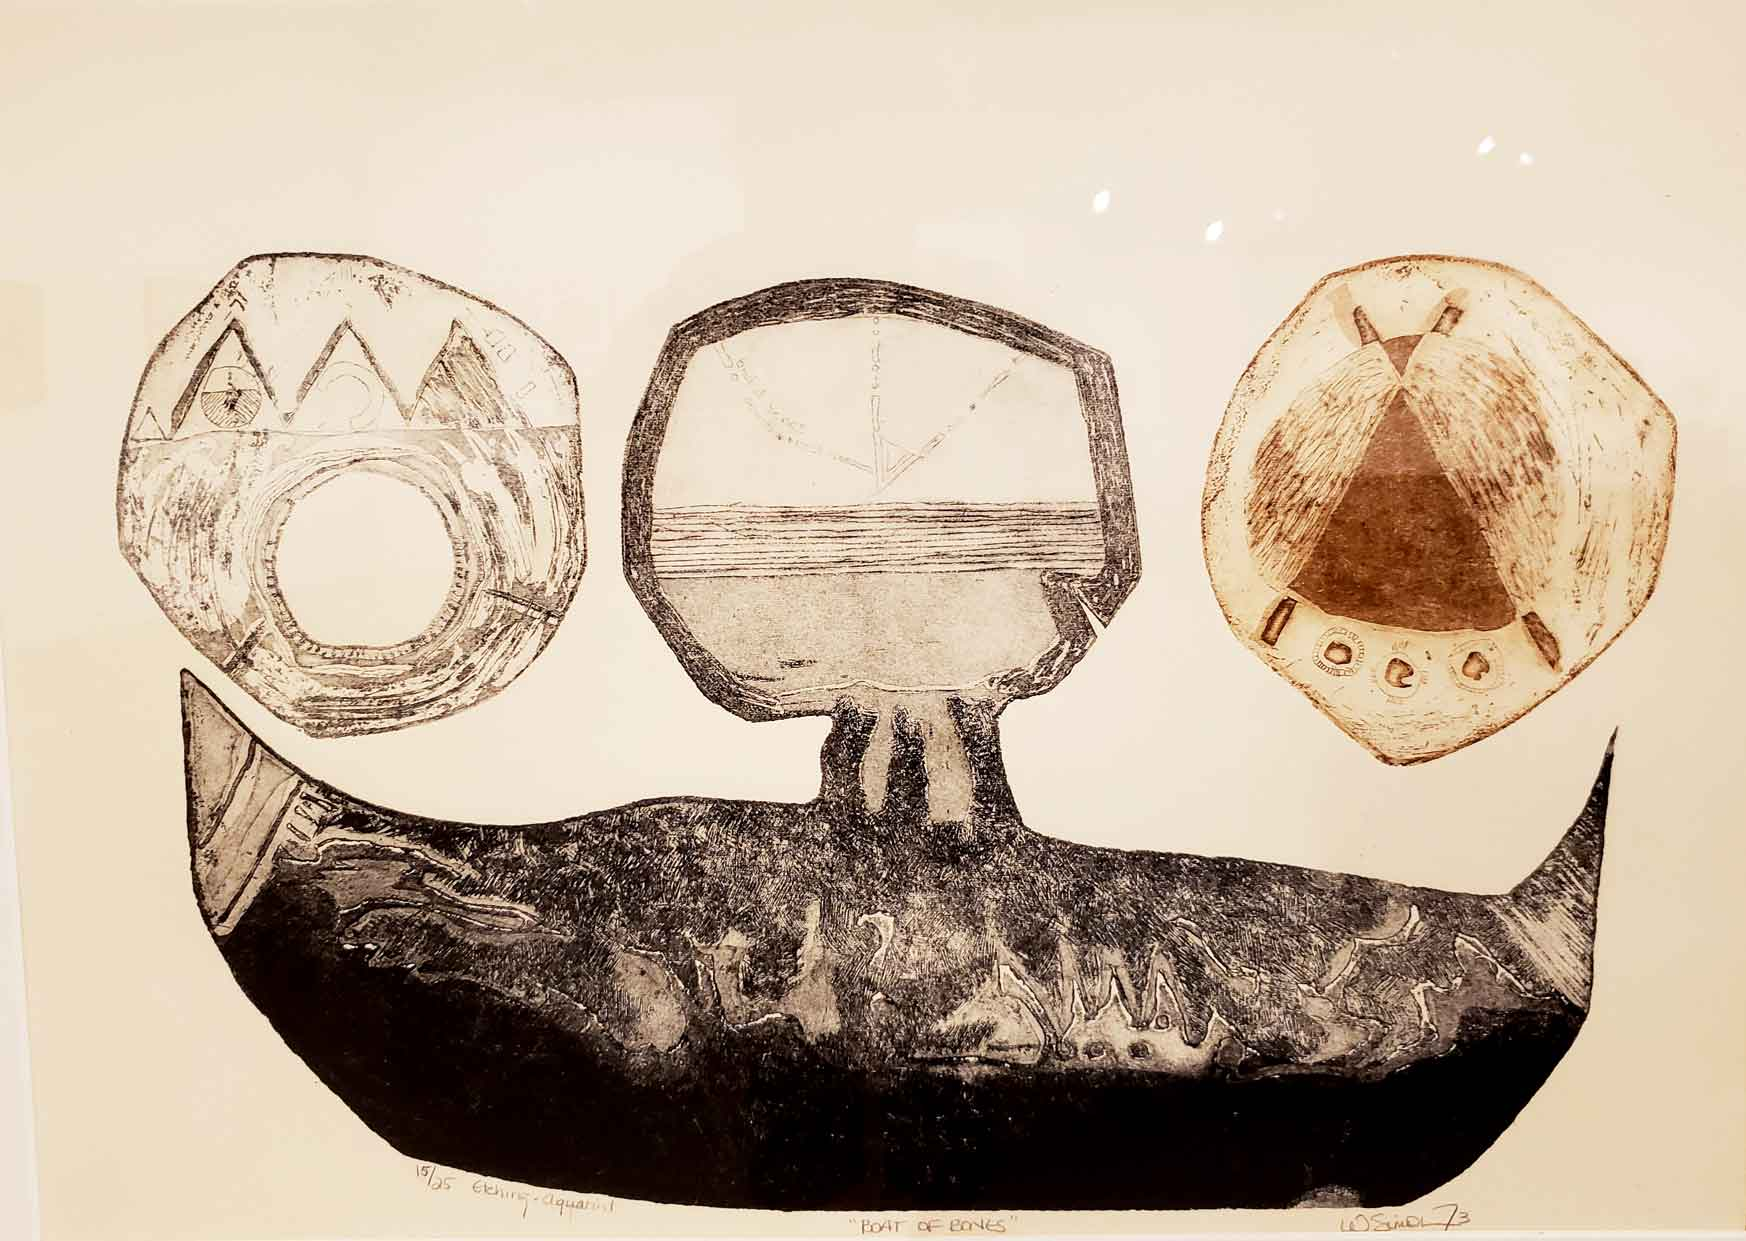 Boat of Bones, etching by Wilma Simon shown at Drawn to the West